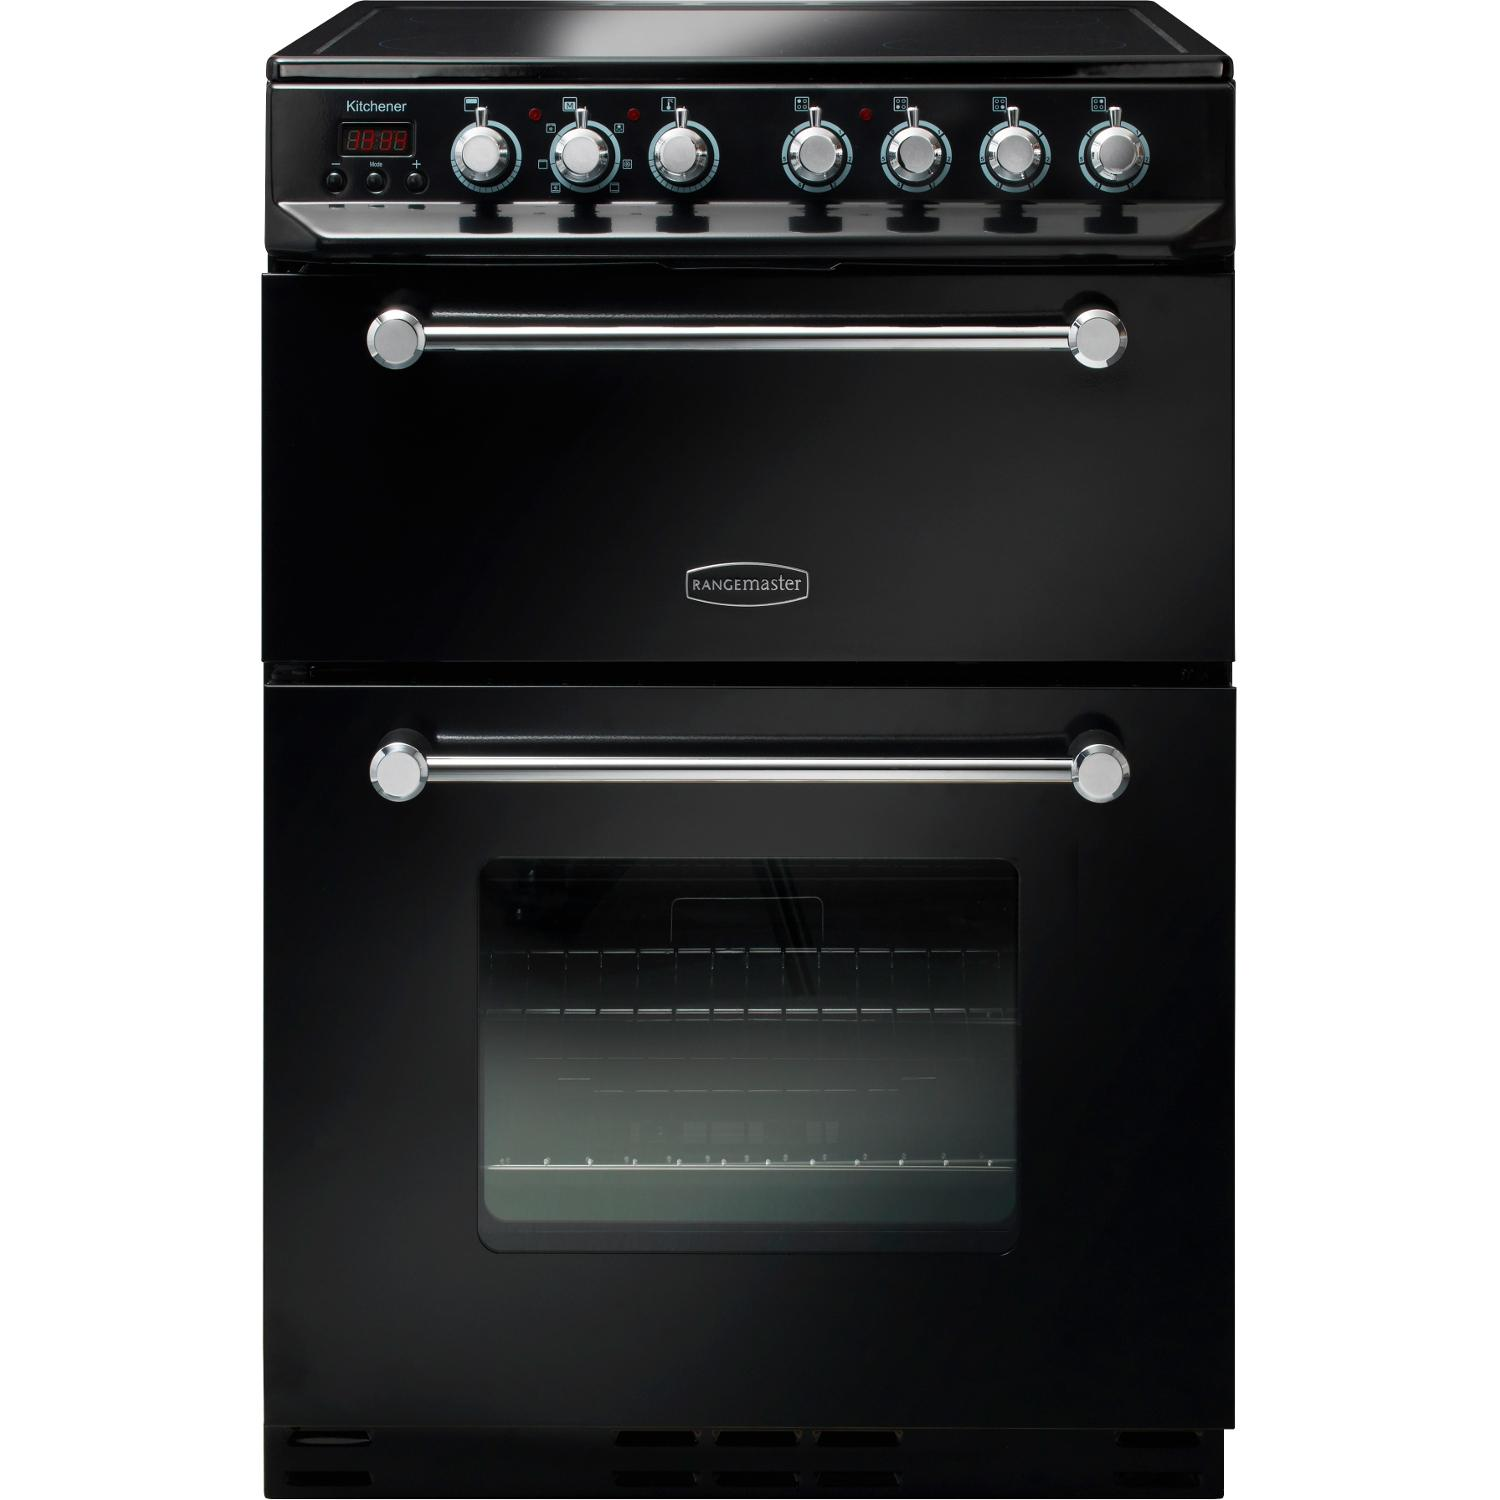 Rangemaster KCH60ECBL/C Kitchener 60 Black with Chrome Trim Electric Cooker with Double Oven